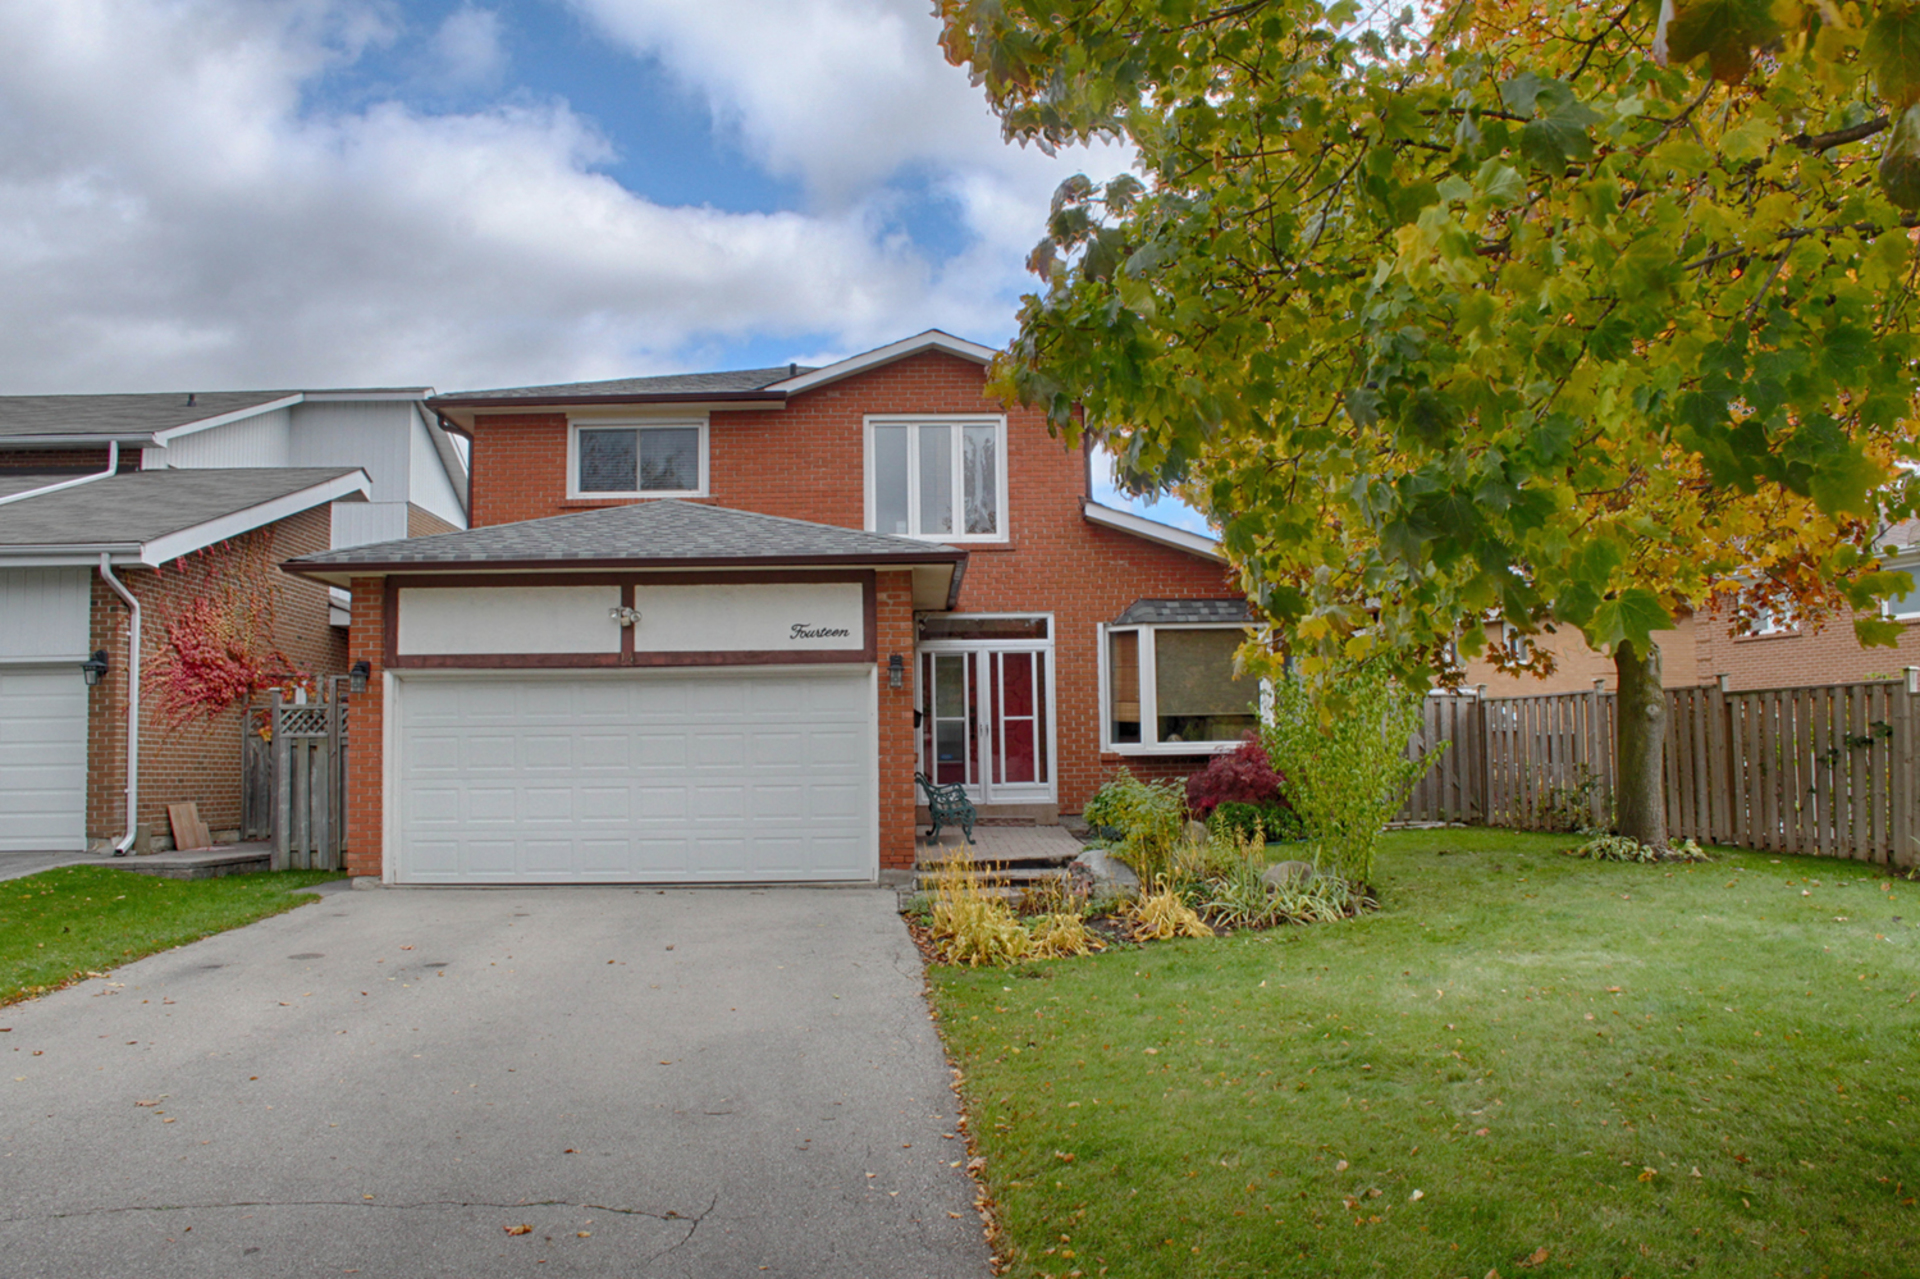 Front at 14 Gretman Crescent, Aileen-Willowbrook, Markham